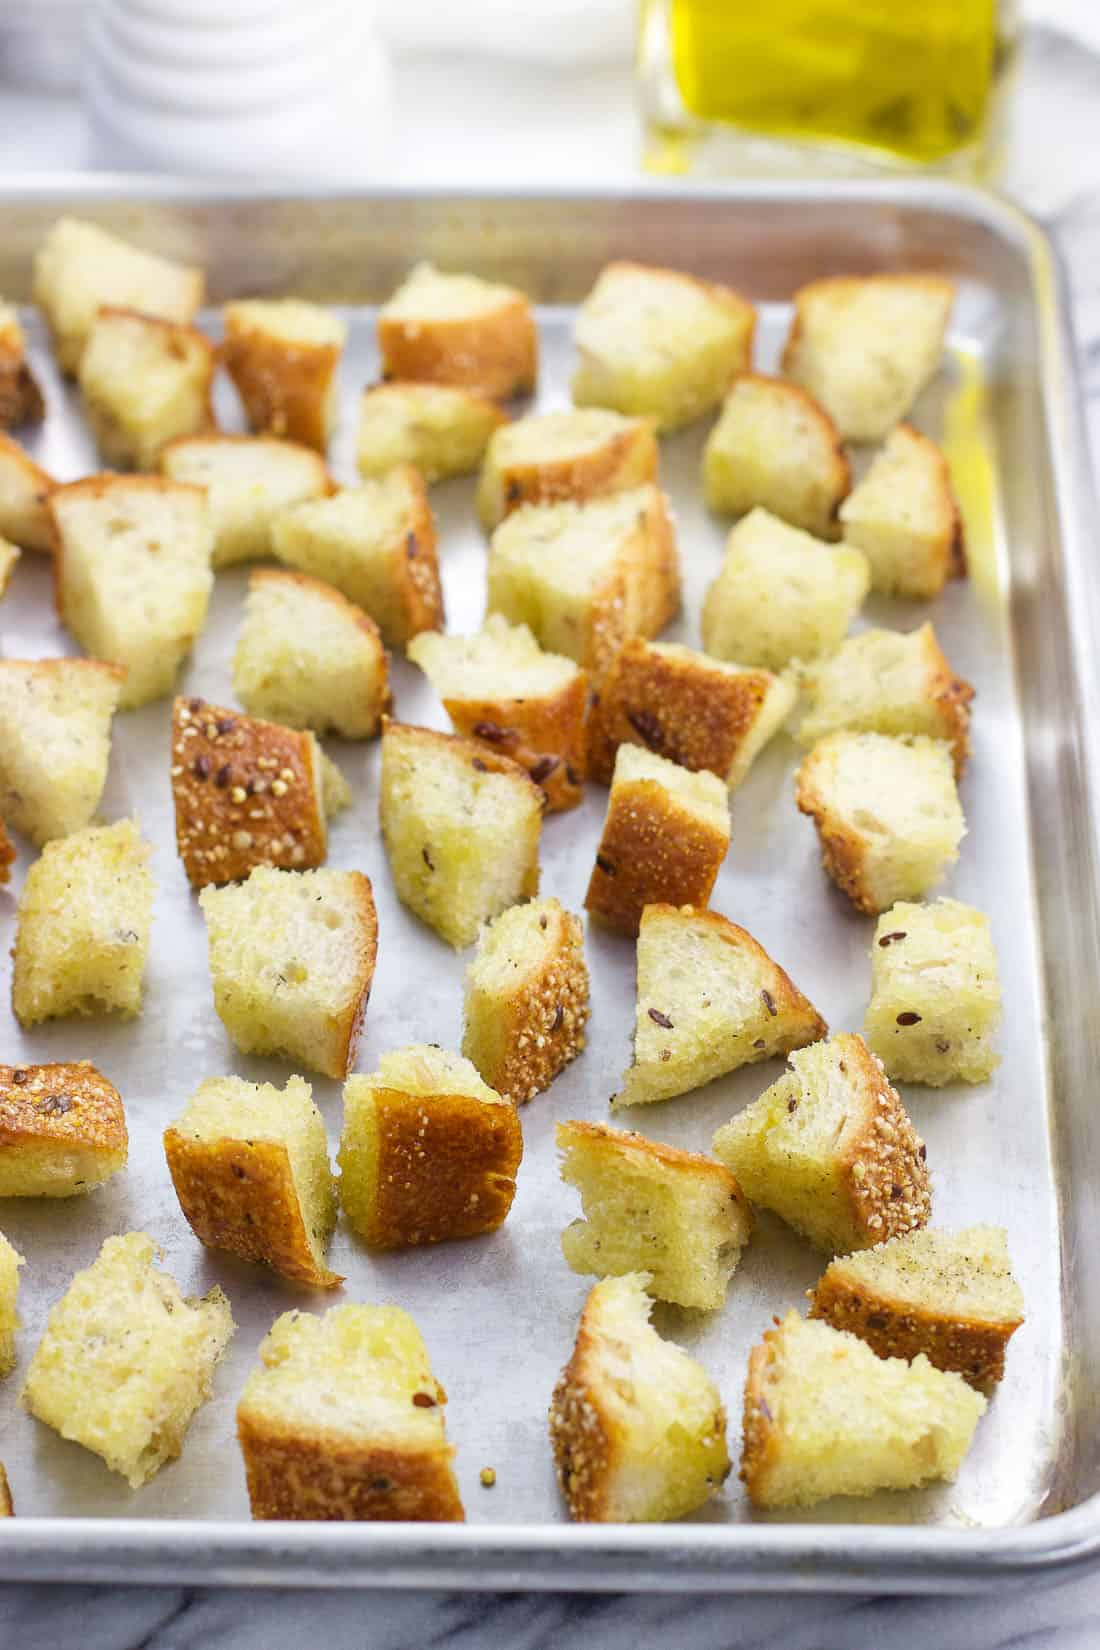 Croutons pre-bake on a steel rimmed baking sheet